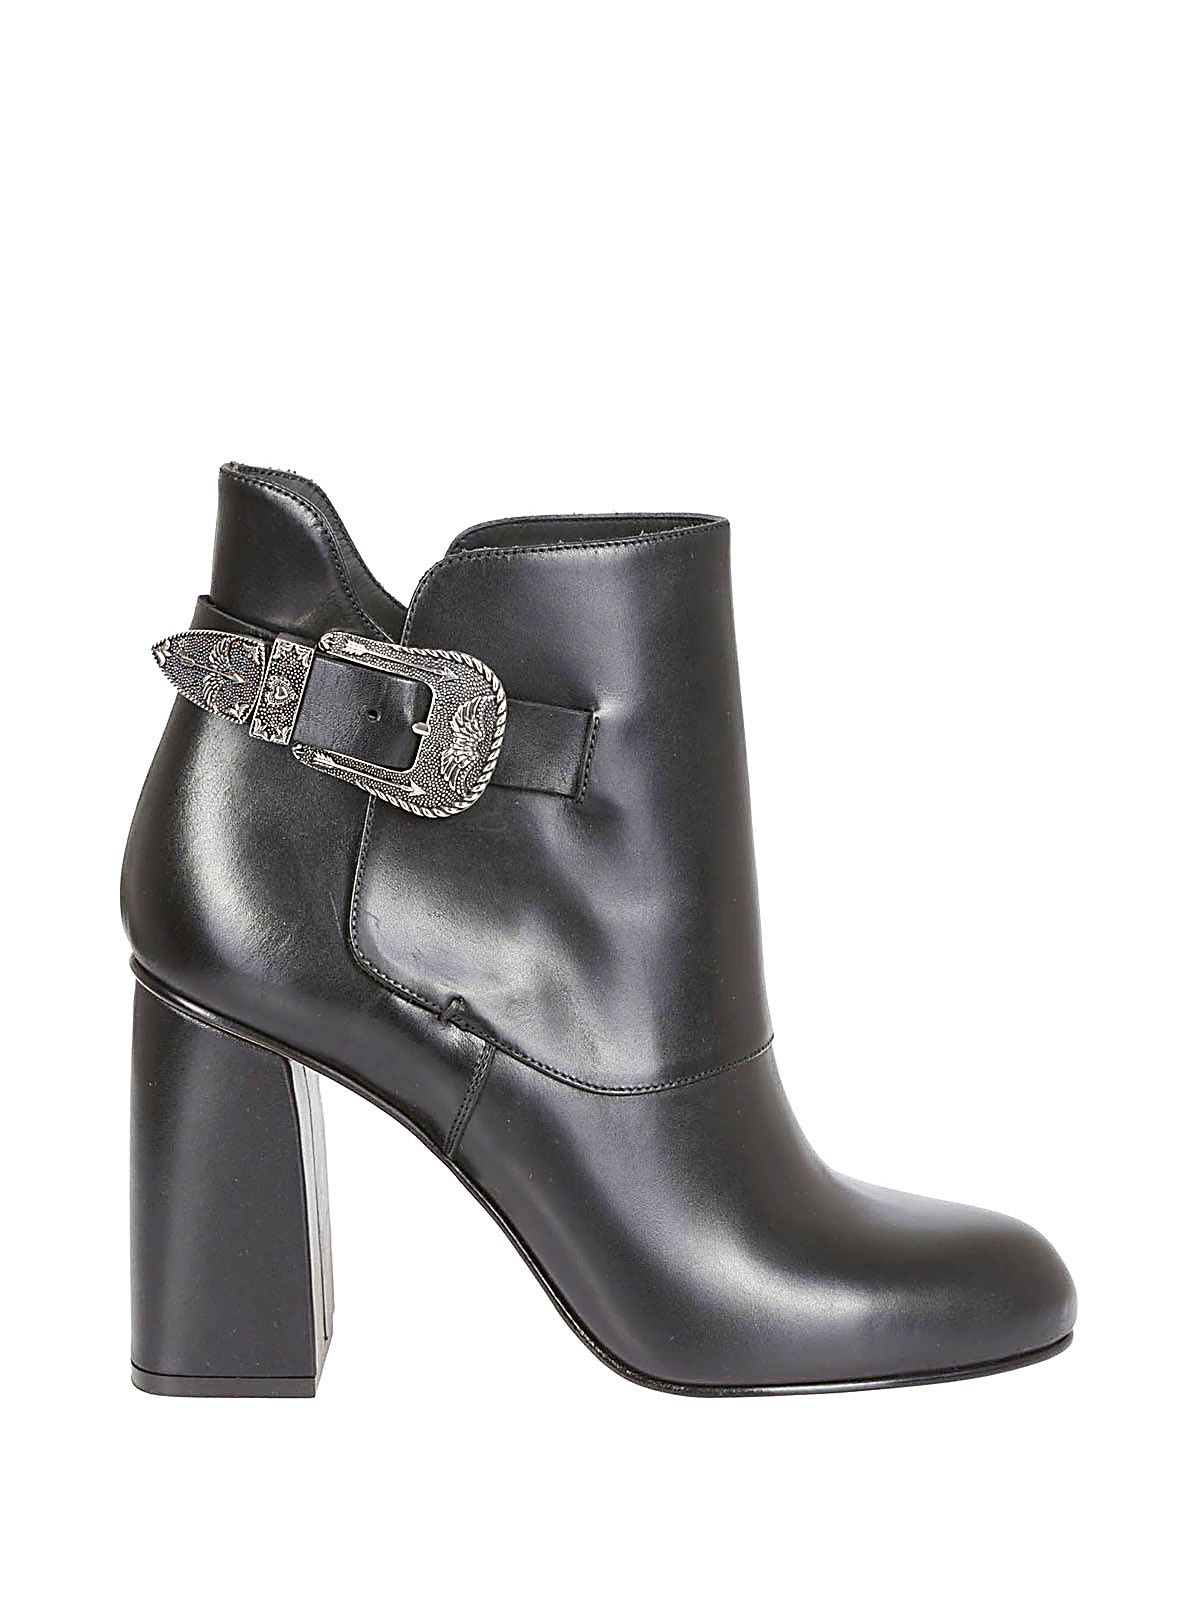 Red Valentino side buckle embellished boots clearance free shipping SNrmDjBOq